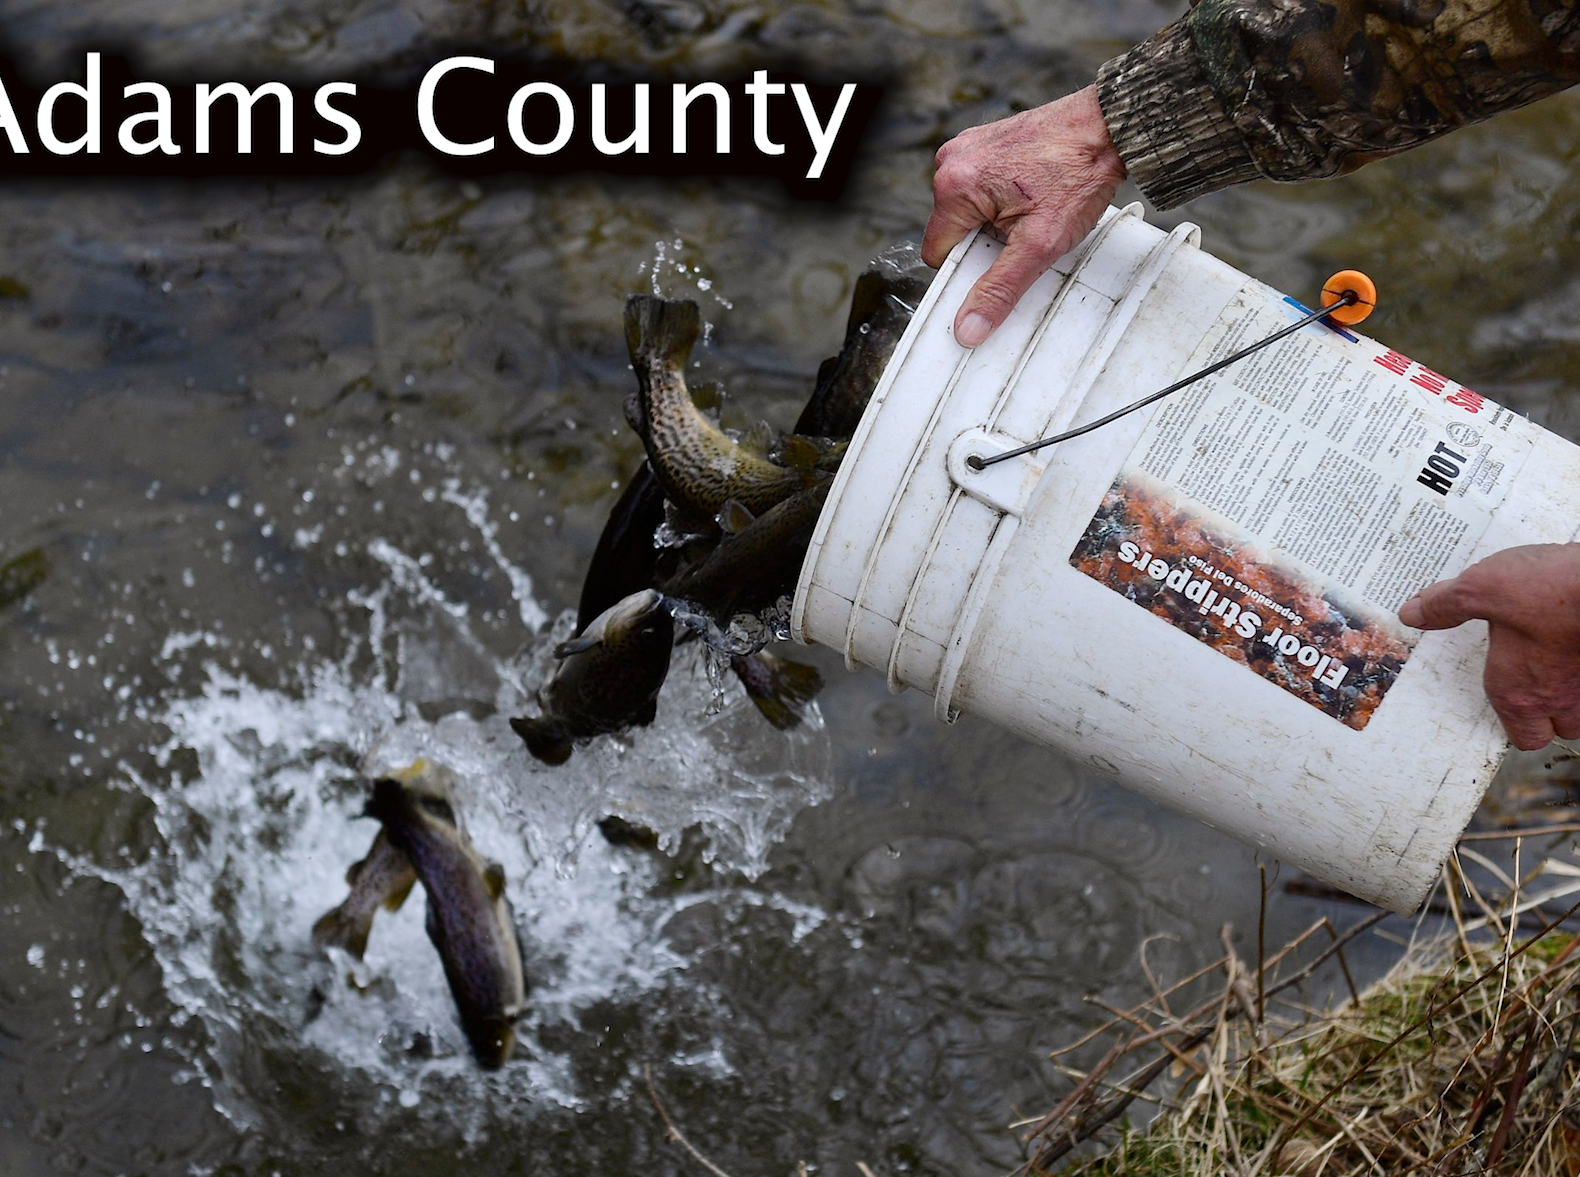 Adams County trout stocking schedule